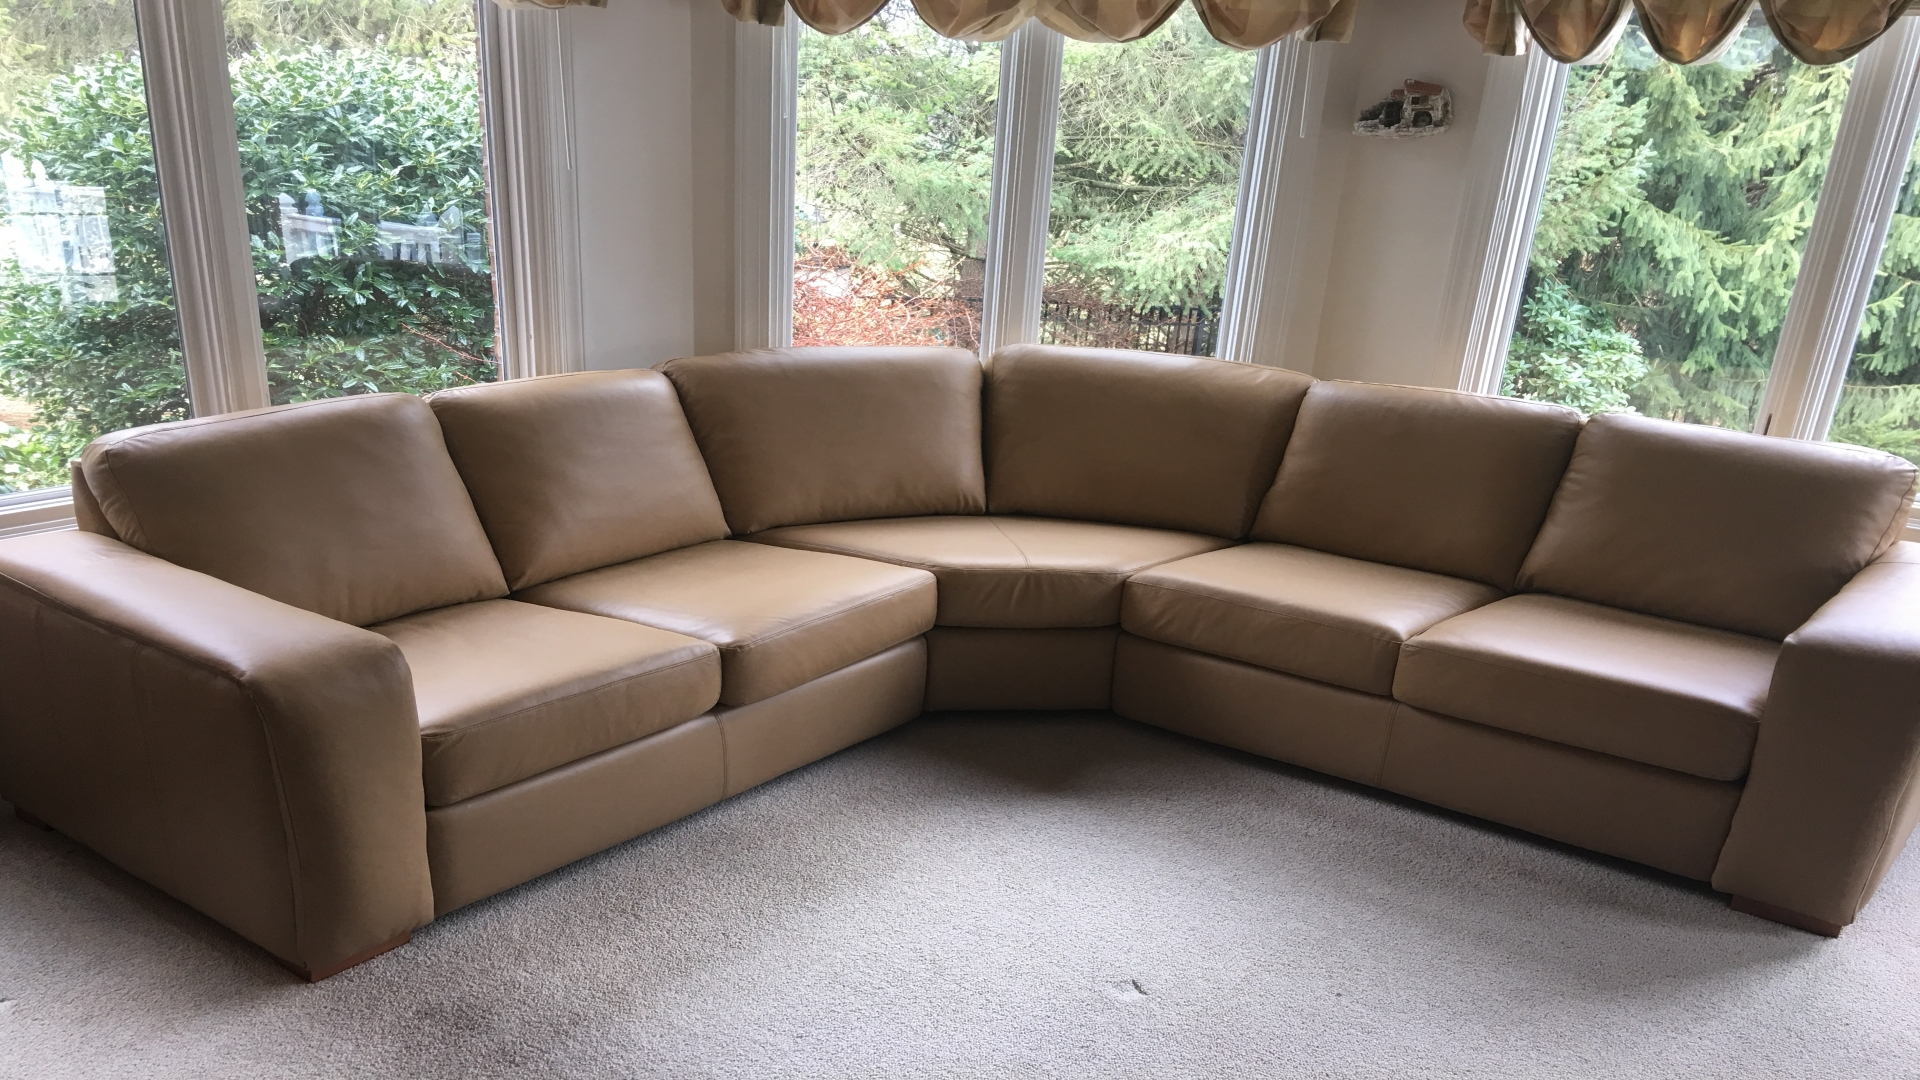 Tan Leather sectional